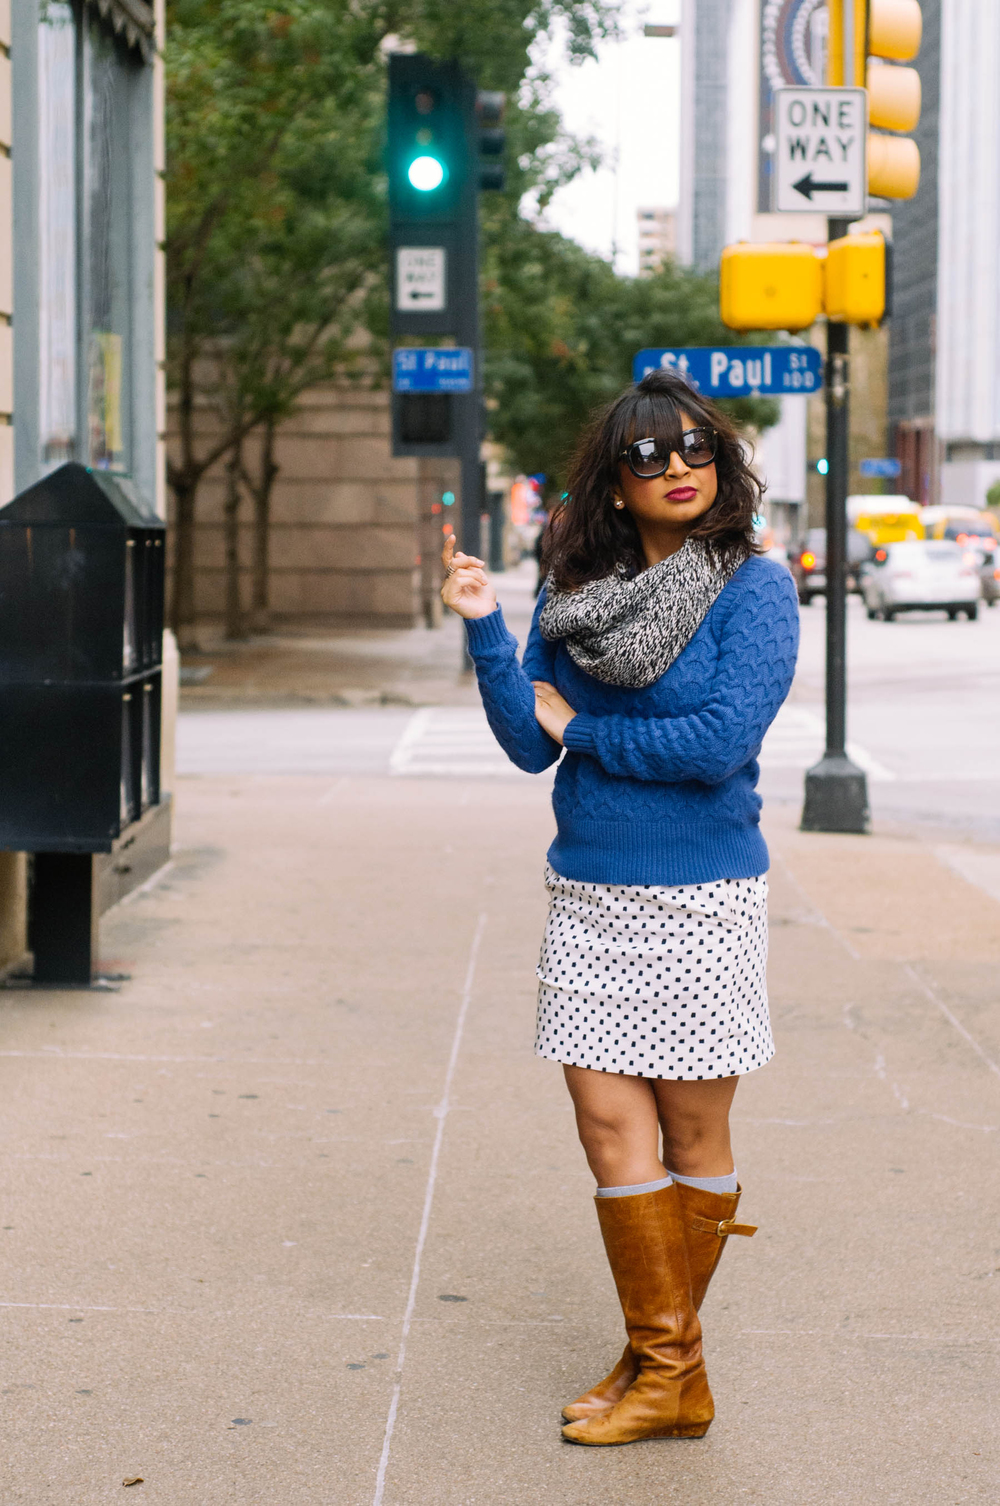 Sweater: J.Crew | Skirt: J.Crew | Boots: Steve Madden | Scarf: J.Crew | Jewelry: Forever 21 | Sunglasses: Tom Ford